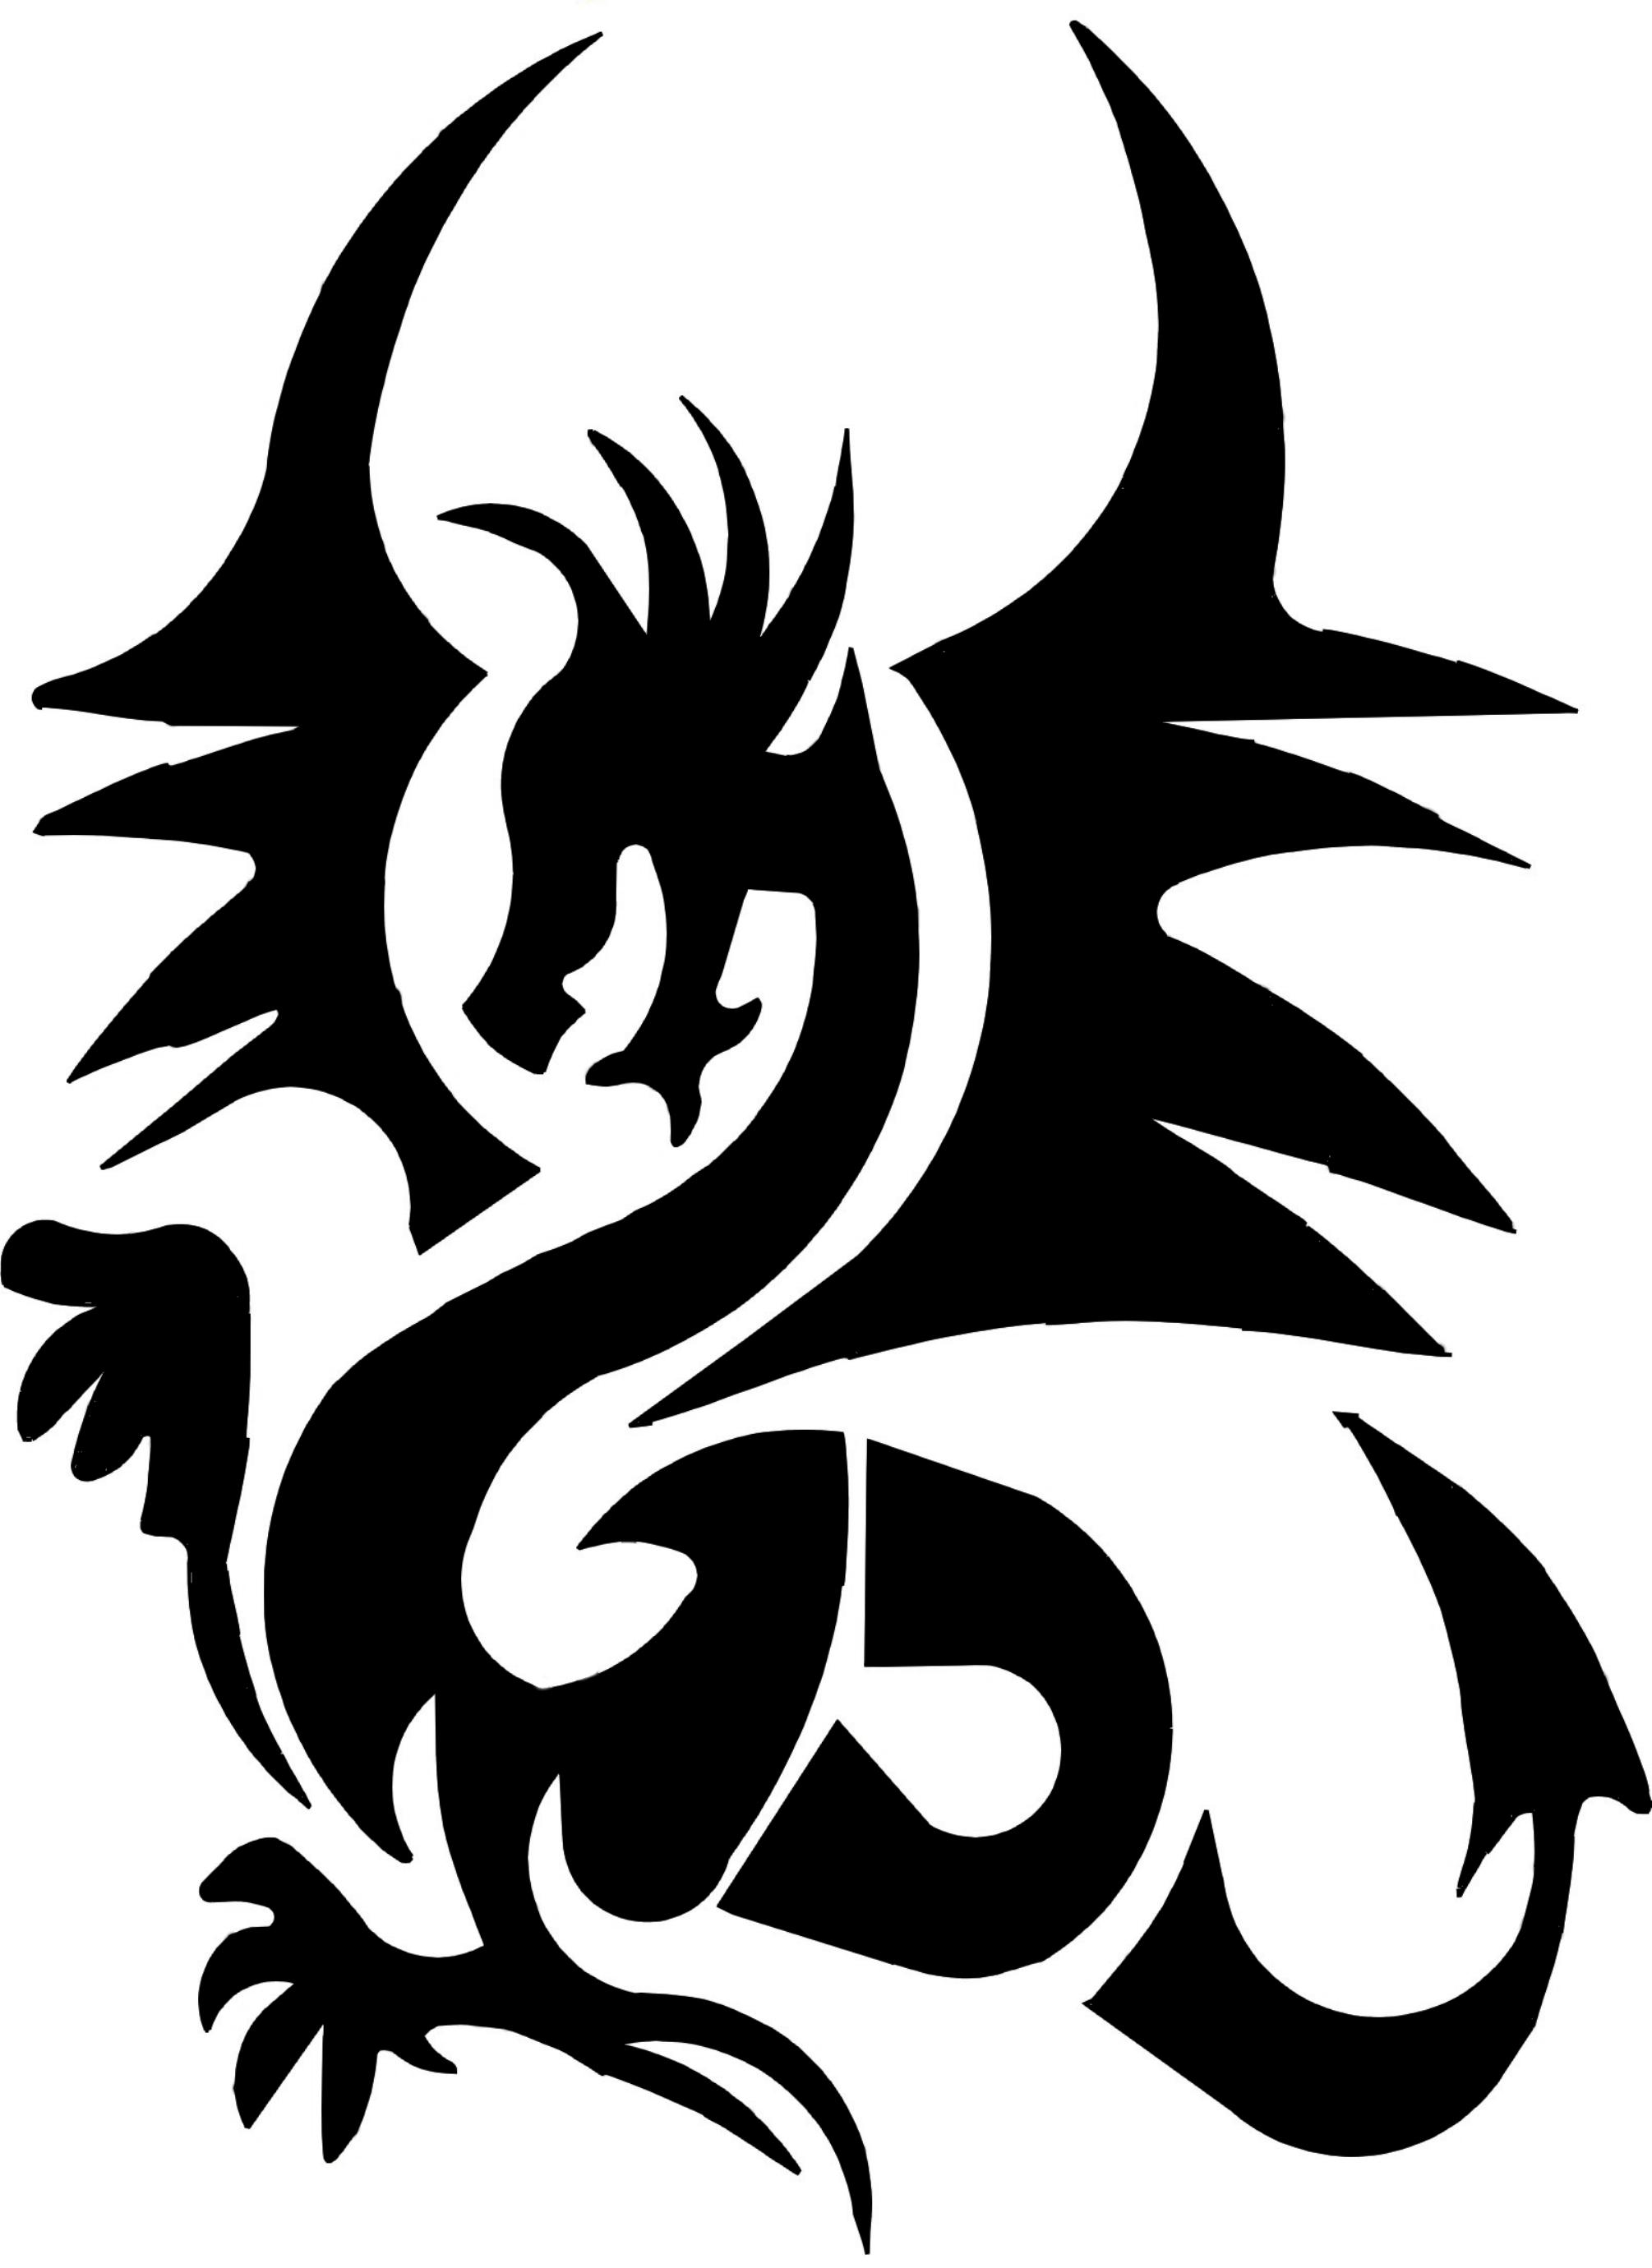 Drachen Tattoo Vorlagen Dragon Silhouette Tattoo At Getdrawings Free For Personal